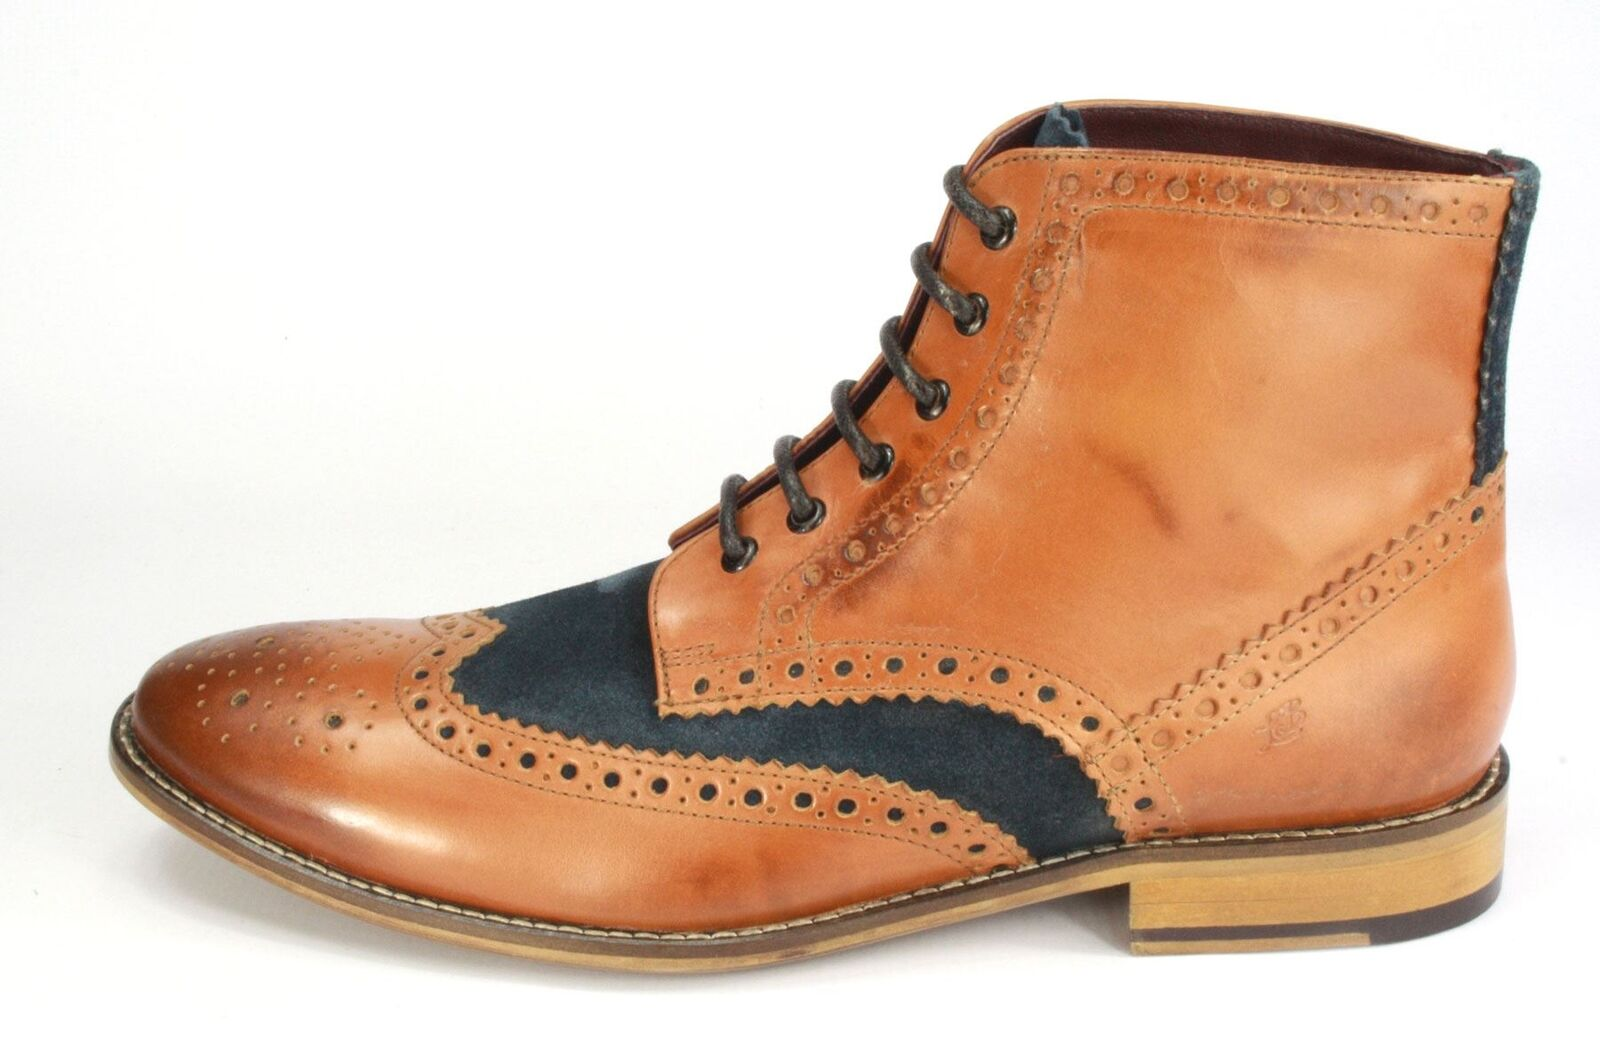 London Brogues GATSBY ALTE MARRONE/Navy FRANCESINE Scarpe con lacci Brogues FRANCESINE MARRONE/Navy 448995